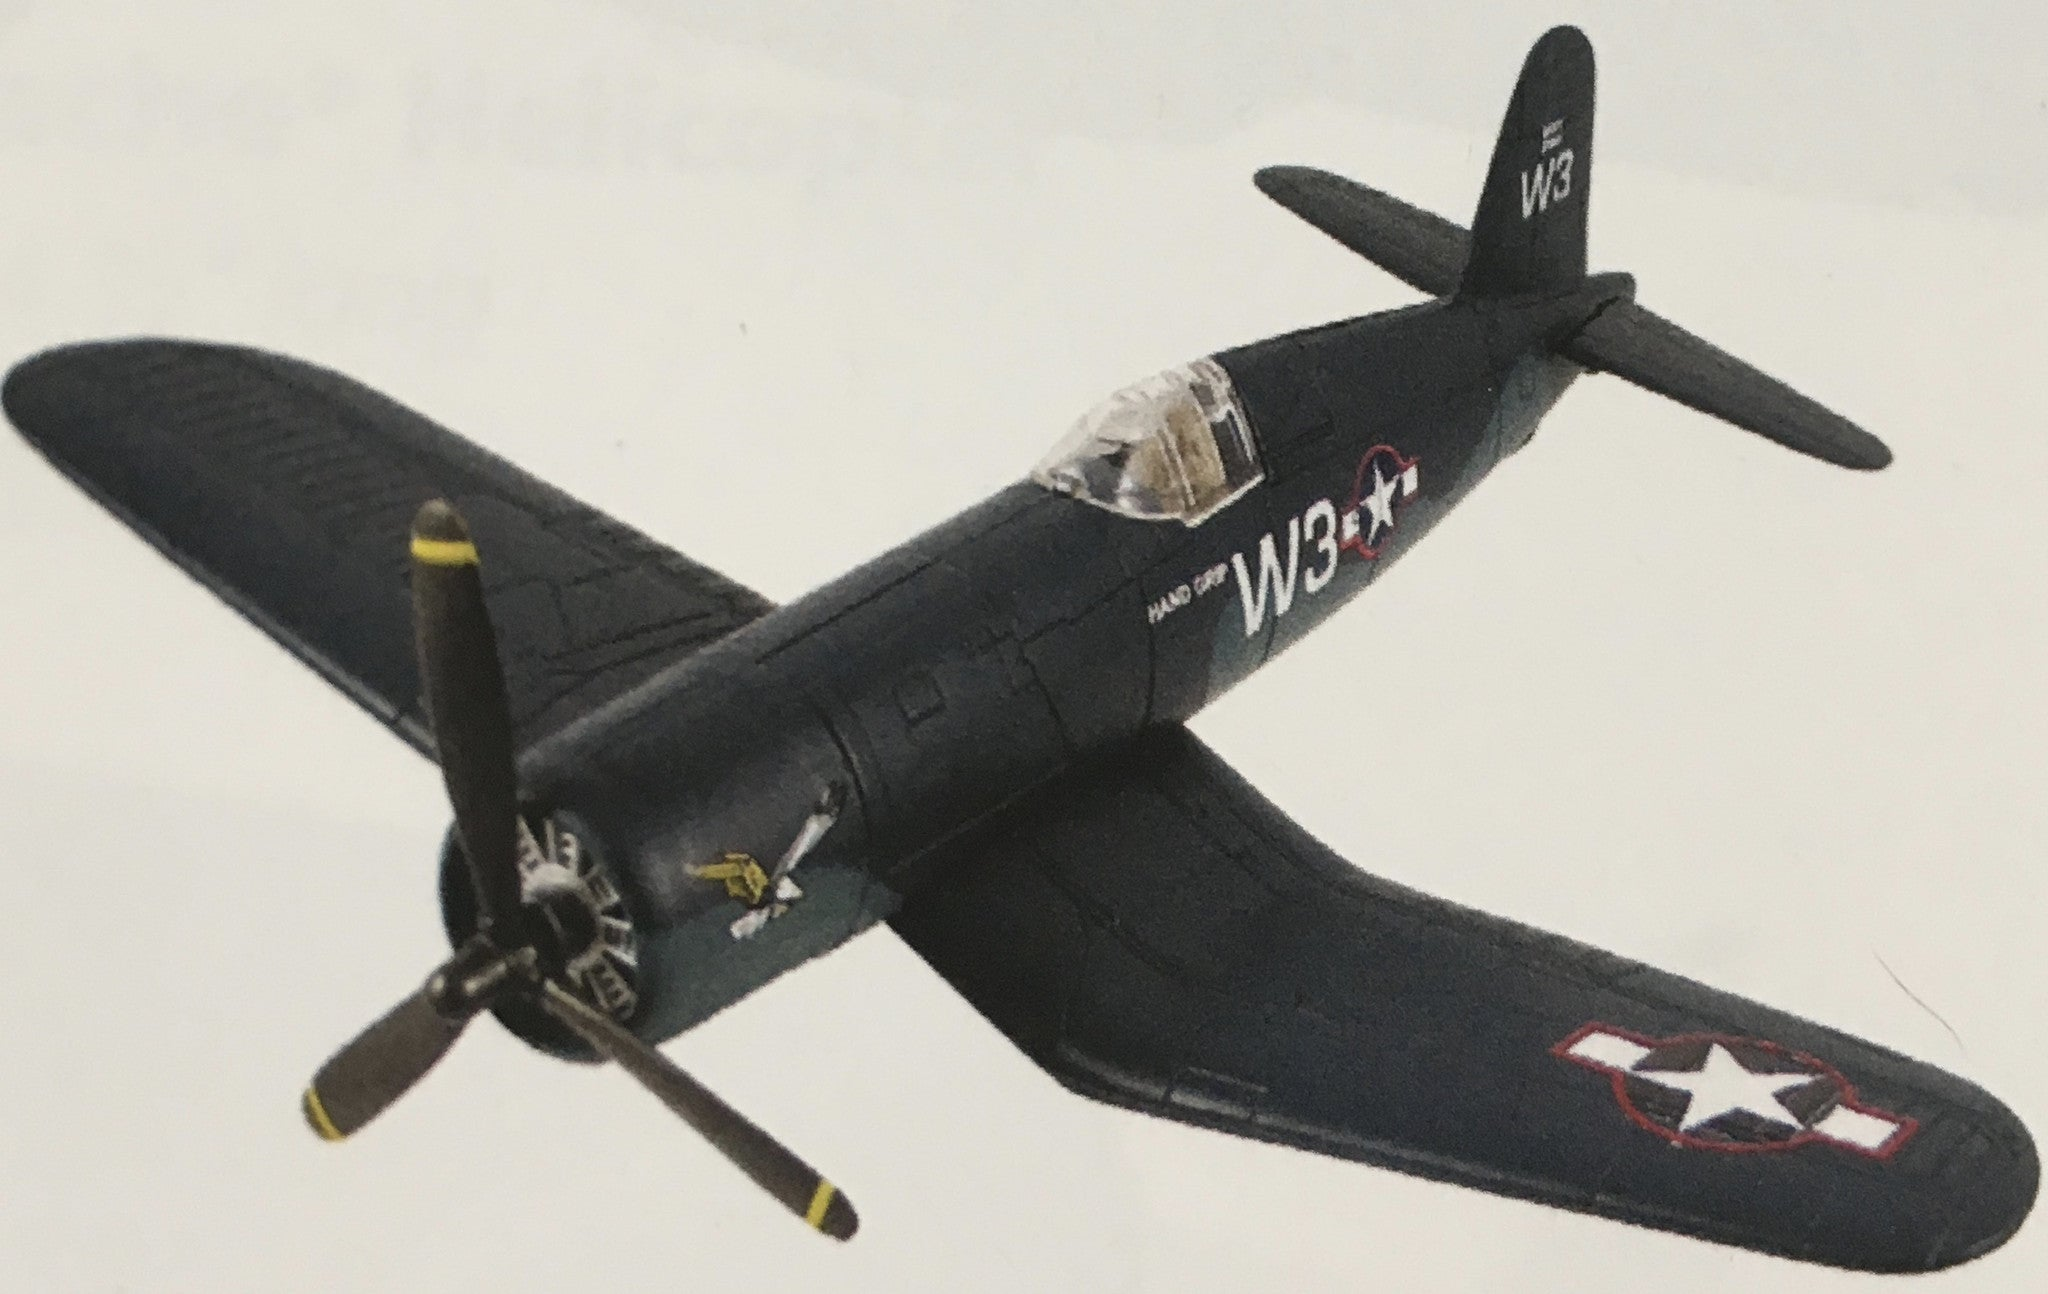 EZ Build Smithsonian F4U Corsair Model